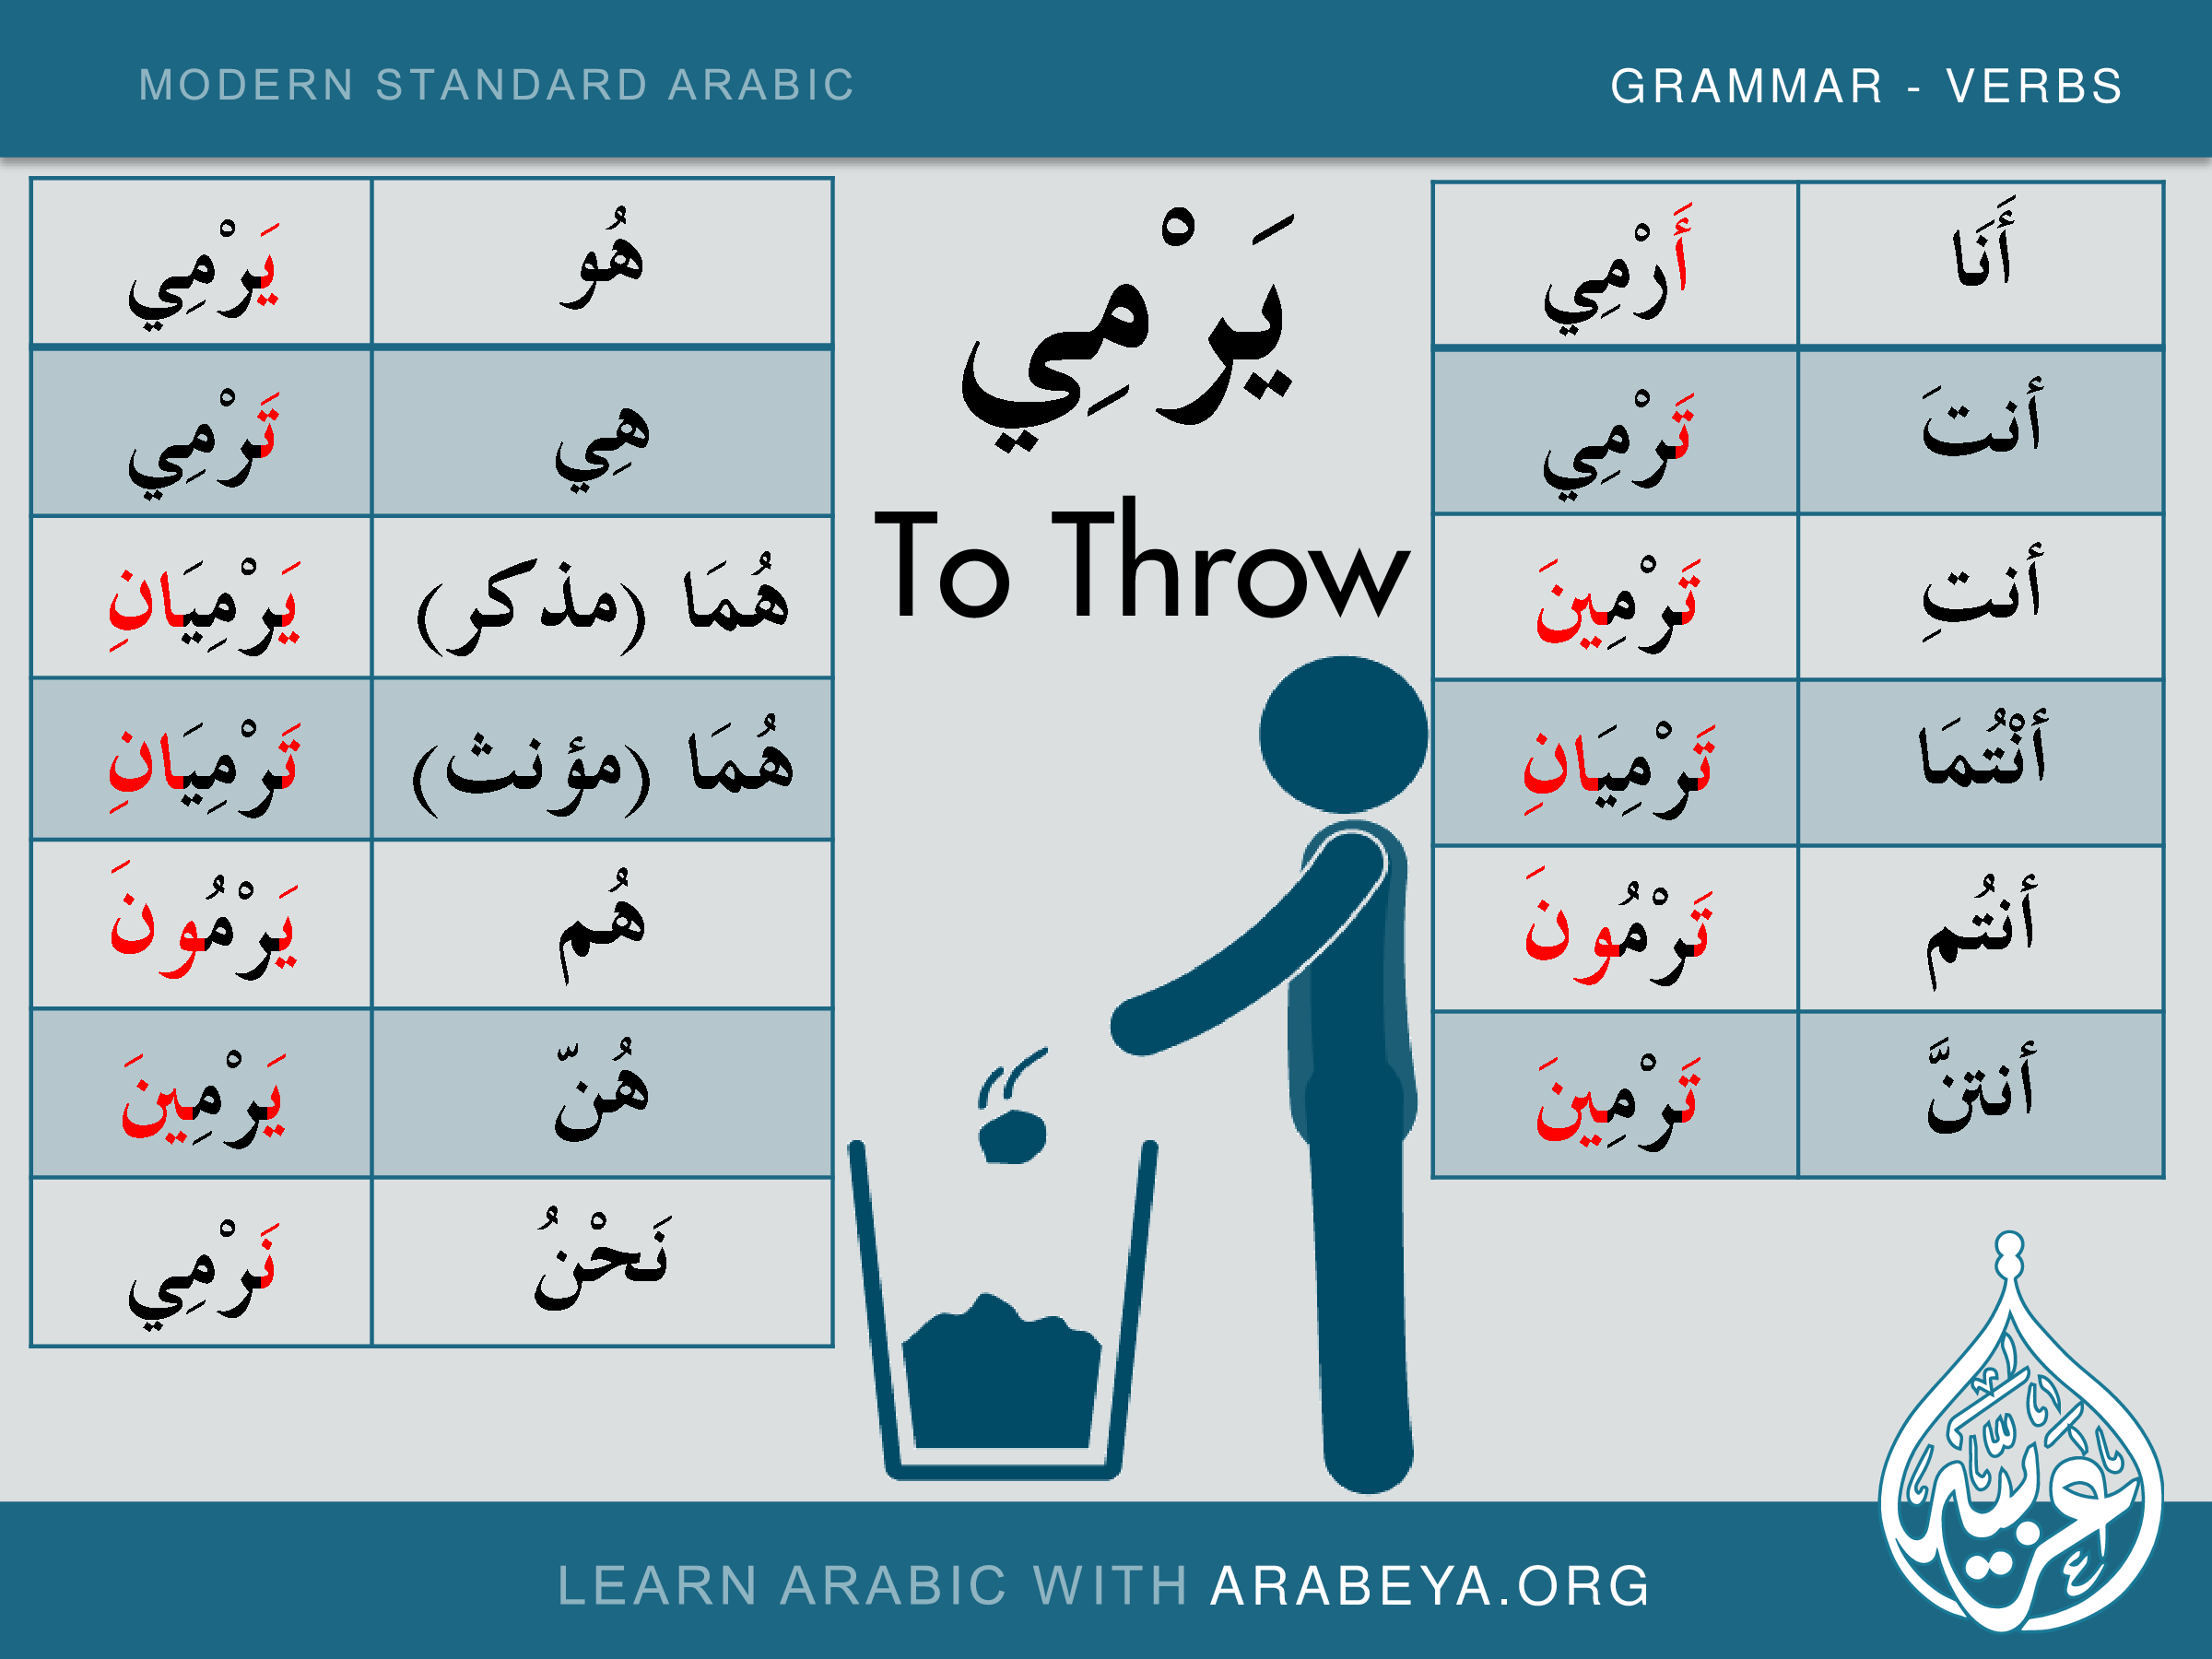 Pin By Arabeya Arabic Language Center On Modern Standard